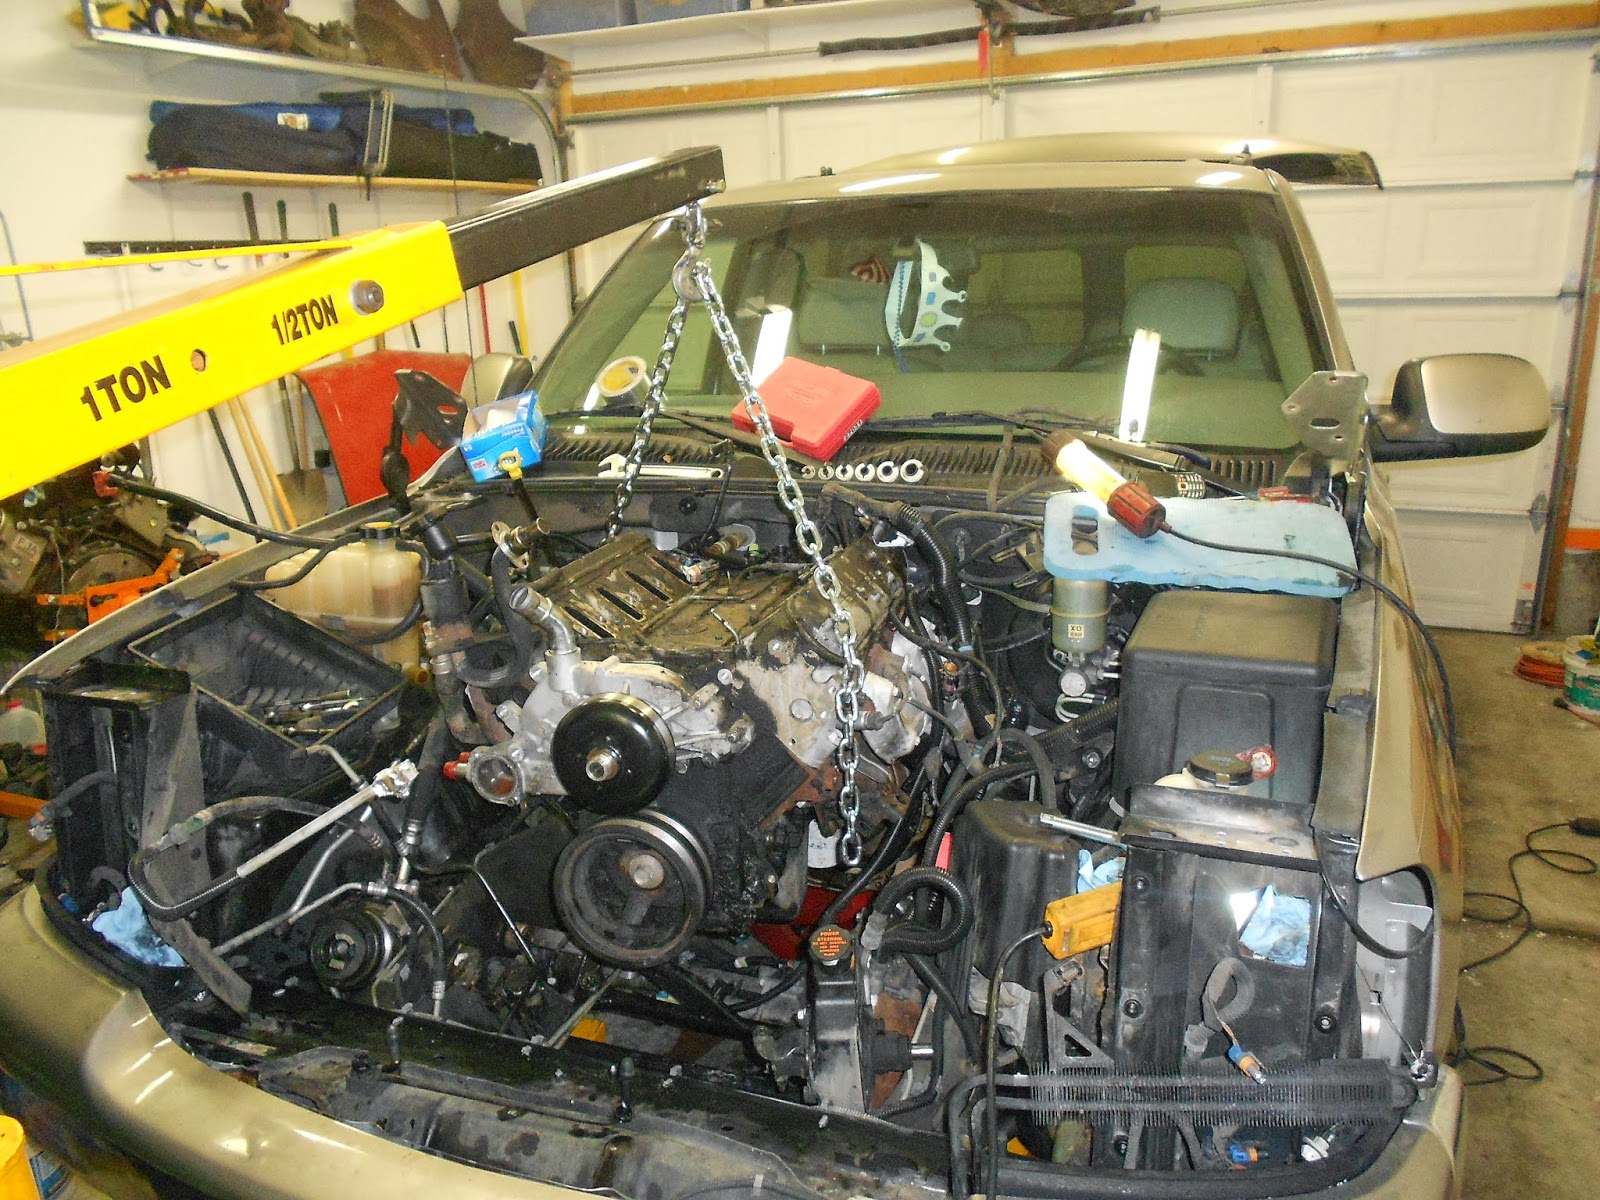 vw bug engine removal diagram wiring library vw engine tin diagram it was really nice being [ 1600 x 1200 Pixel ]